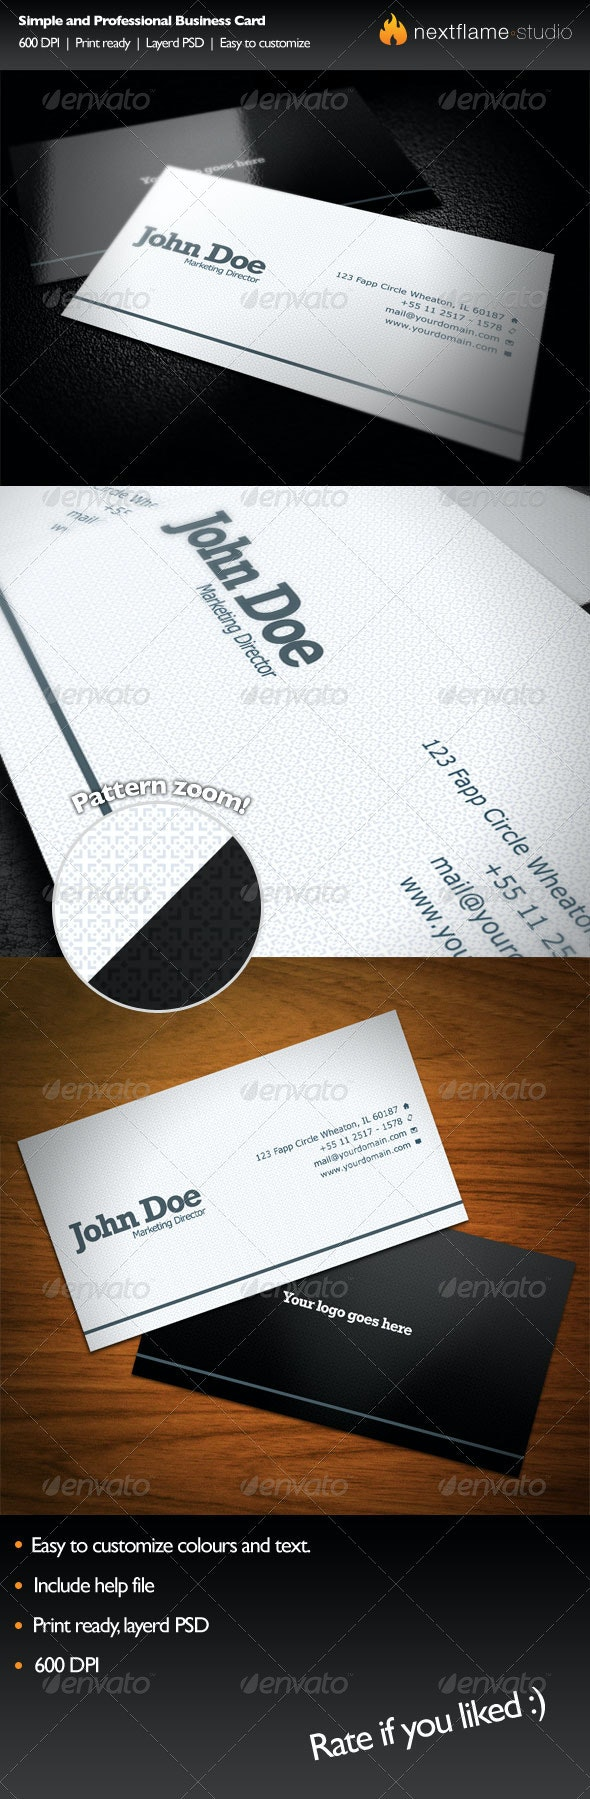 Simple and Professional Business Card - Corporate Business Cards